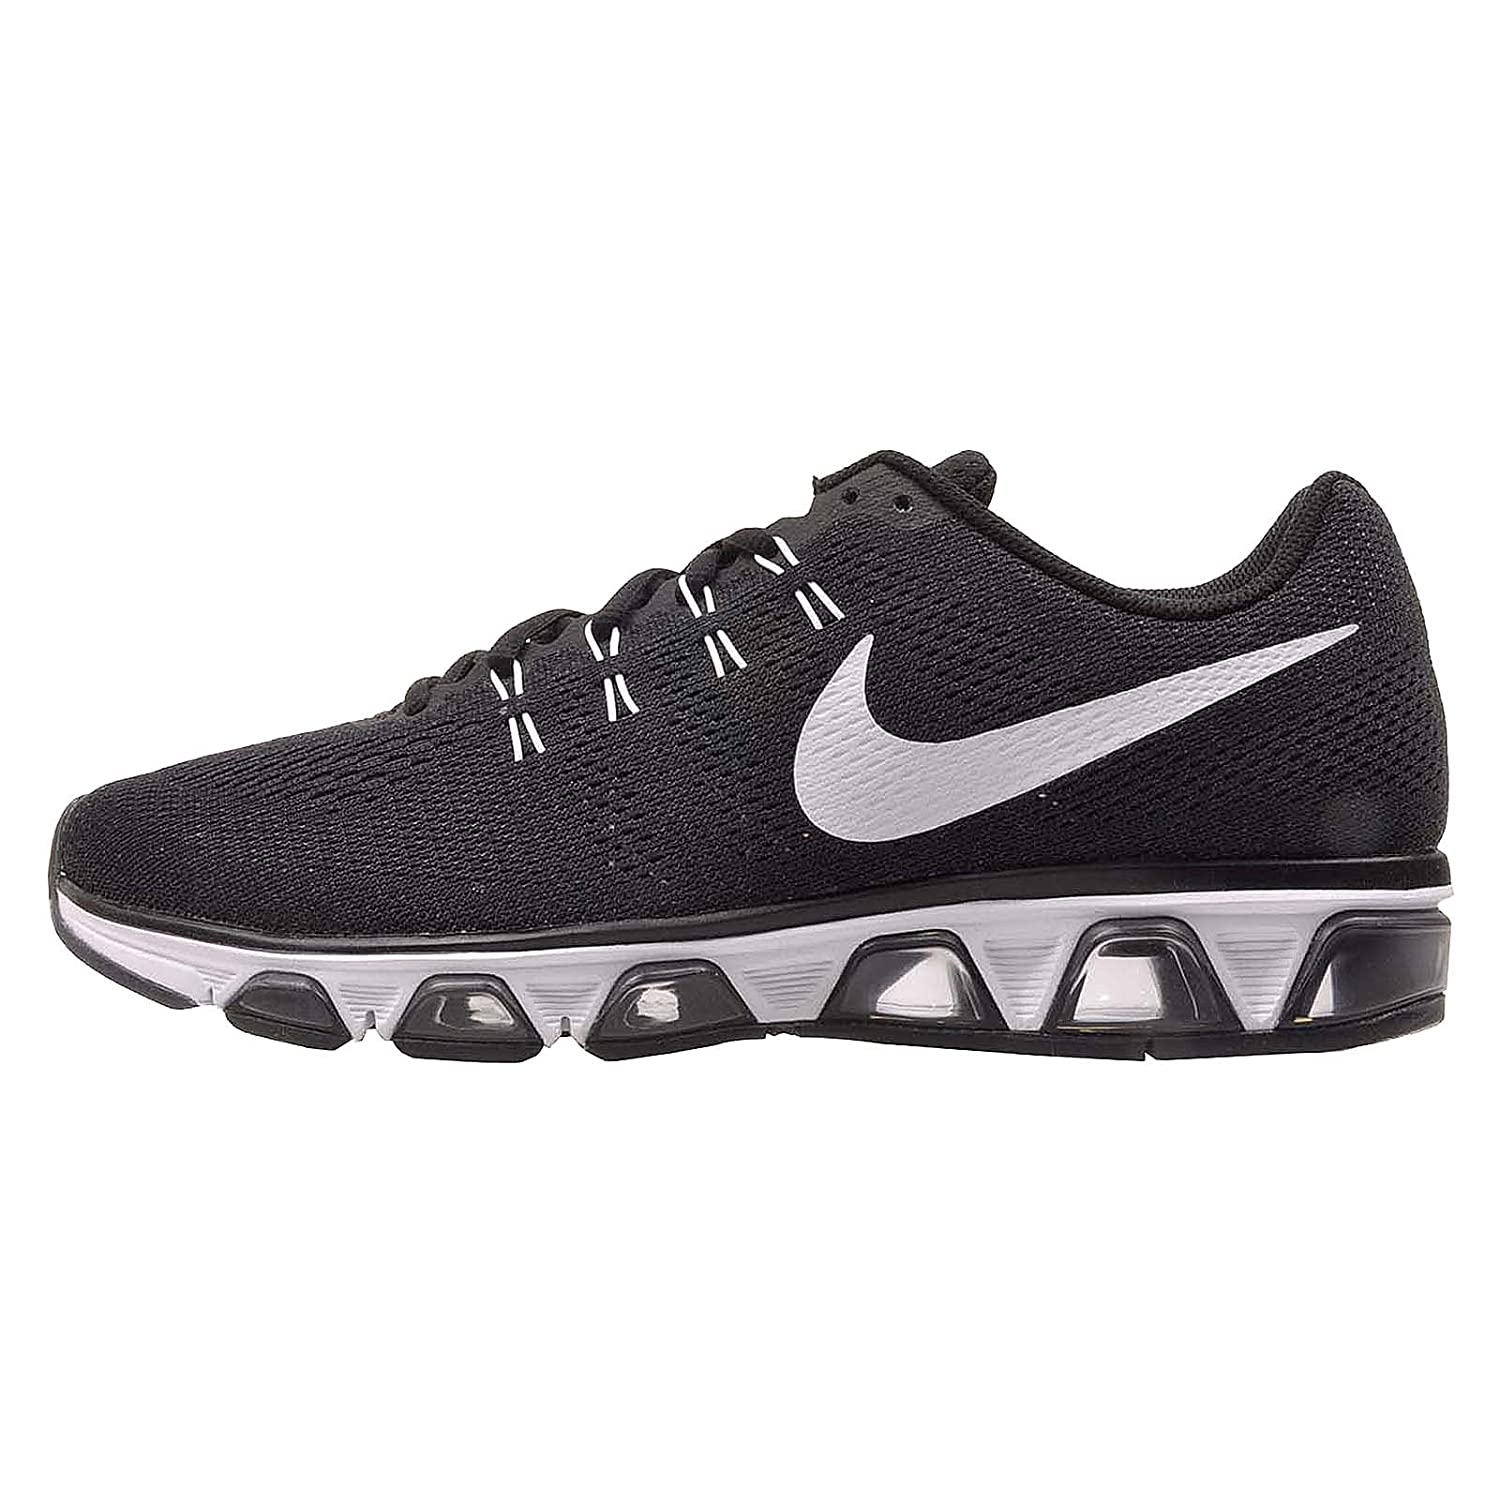 separation shoes 8353e f48f7 Amazon.com  Nike Womens Air Max Tailwind 8 Black White Anthracite Running  Shoe 12 B(M) US Black White Anthracite  Sports   Outdoors